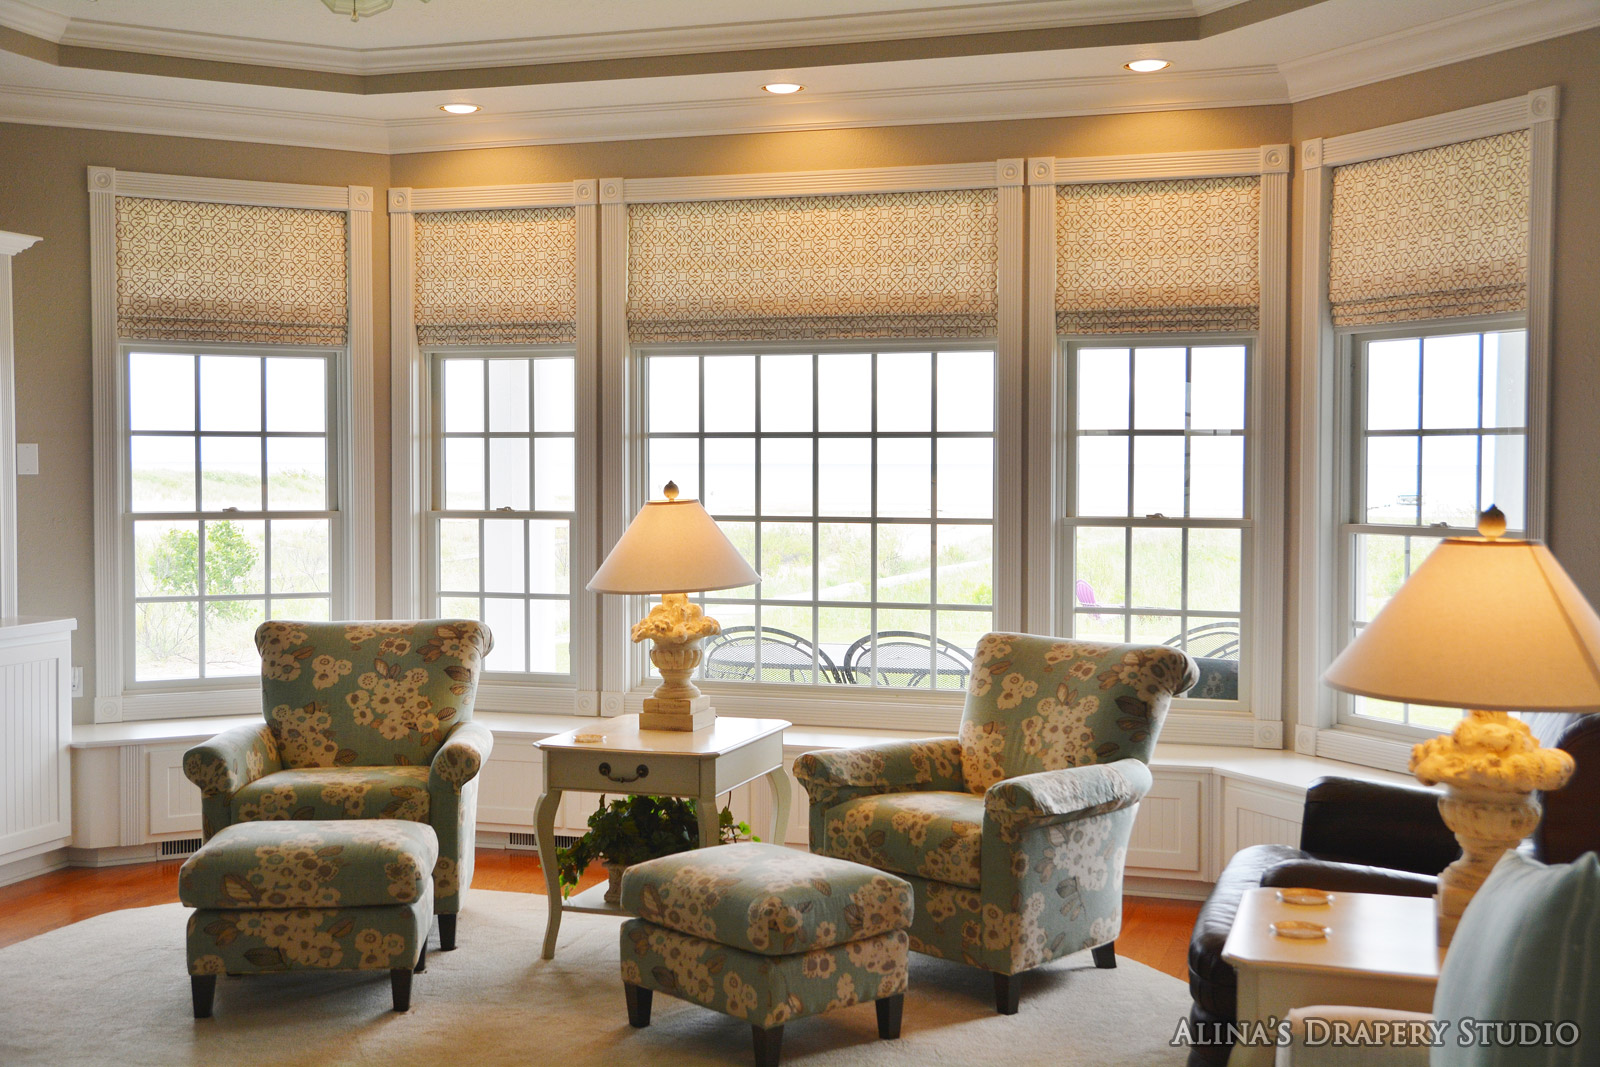 Roman Shades In Living Room - [peenmedia.com]